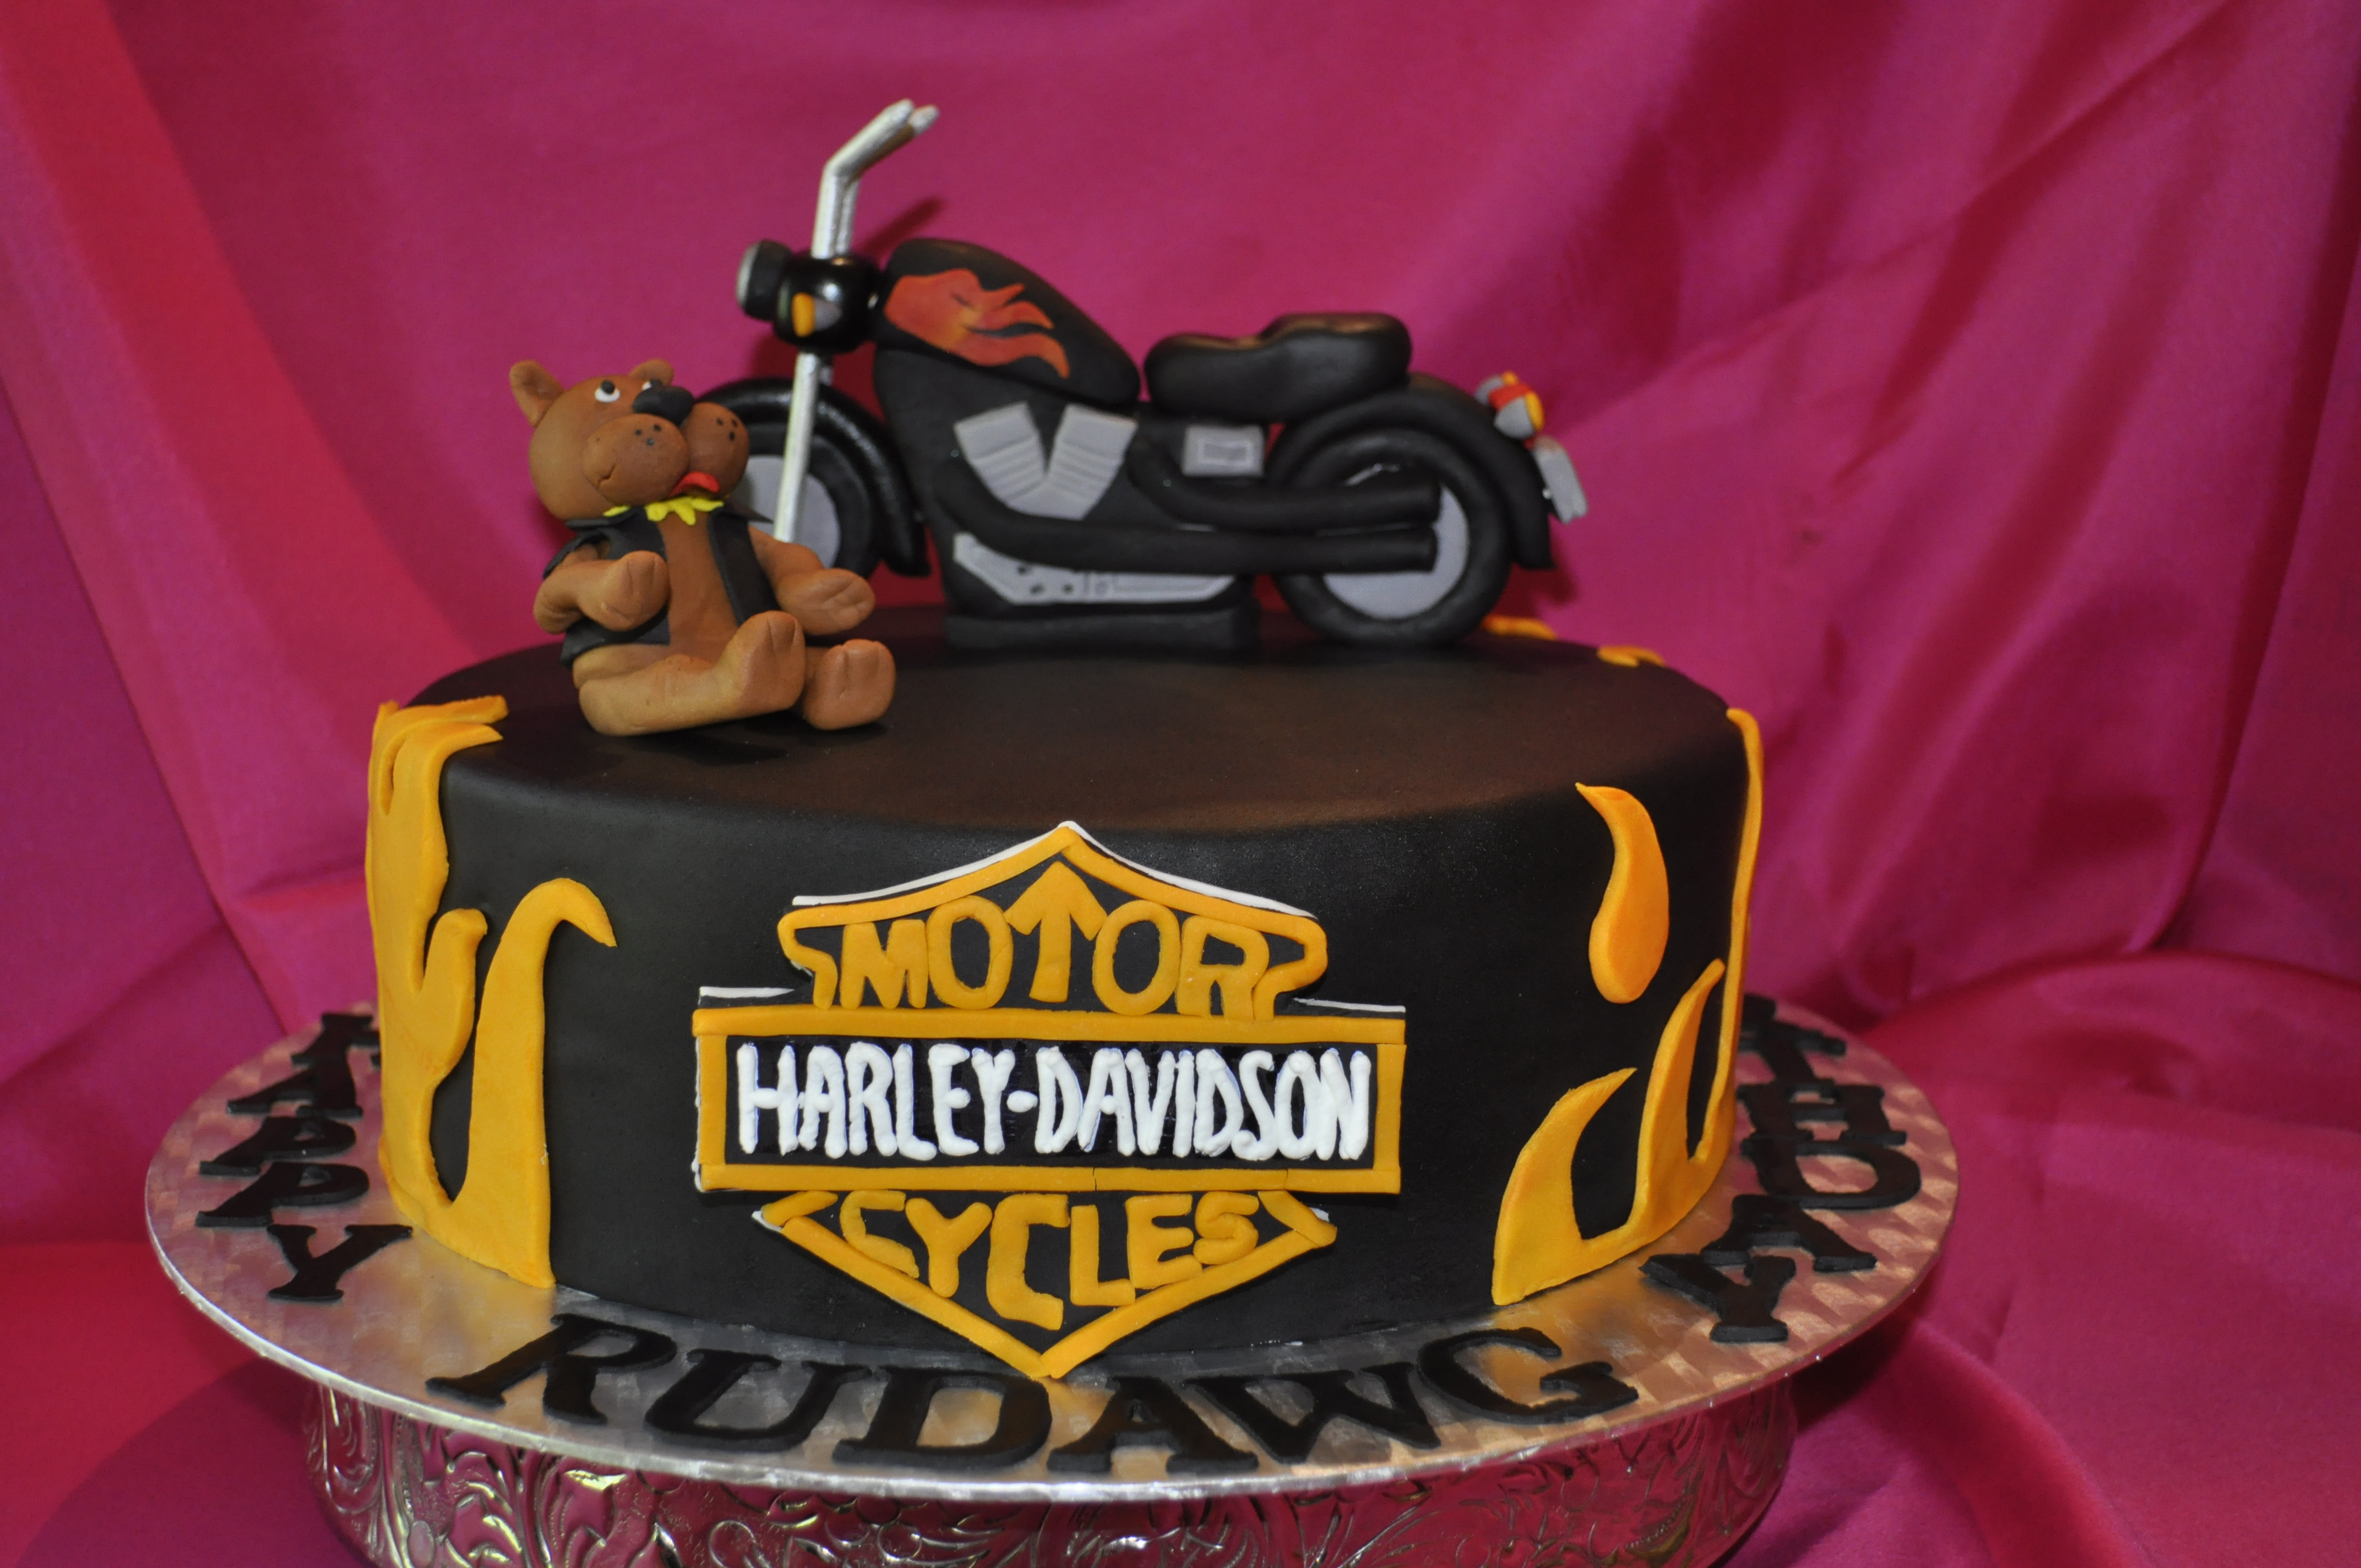 Motorcycle Birthday Cakes 11 Motorcycle Homemade Birthday Cakes Photo Homemade Motorcycle